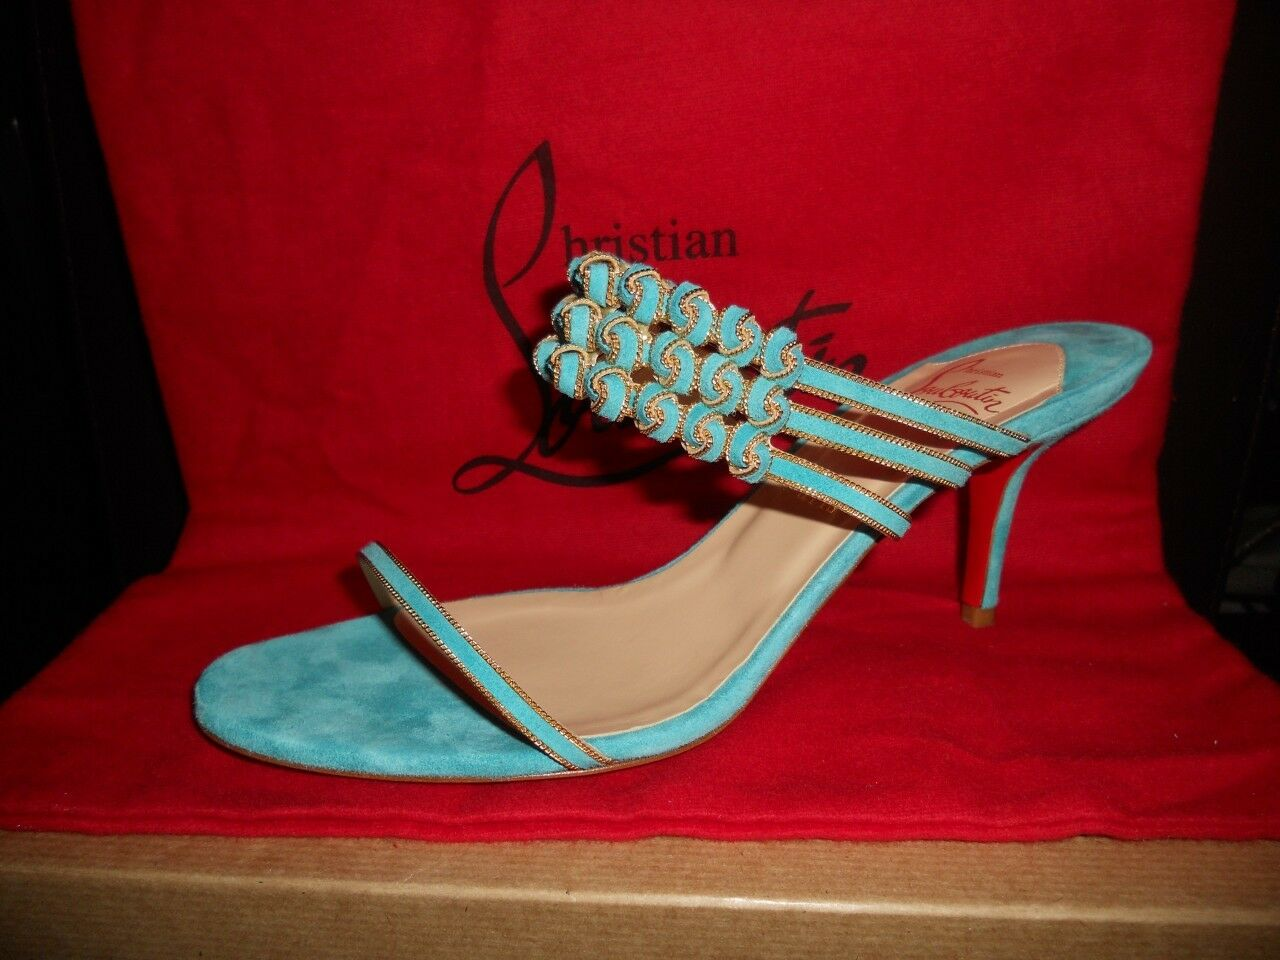 Christian Louboutin KEFFINANA Suede Chain Slides Slides Slides Sandals shoes Turquoise  1,198 b43d4a